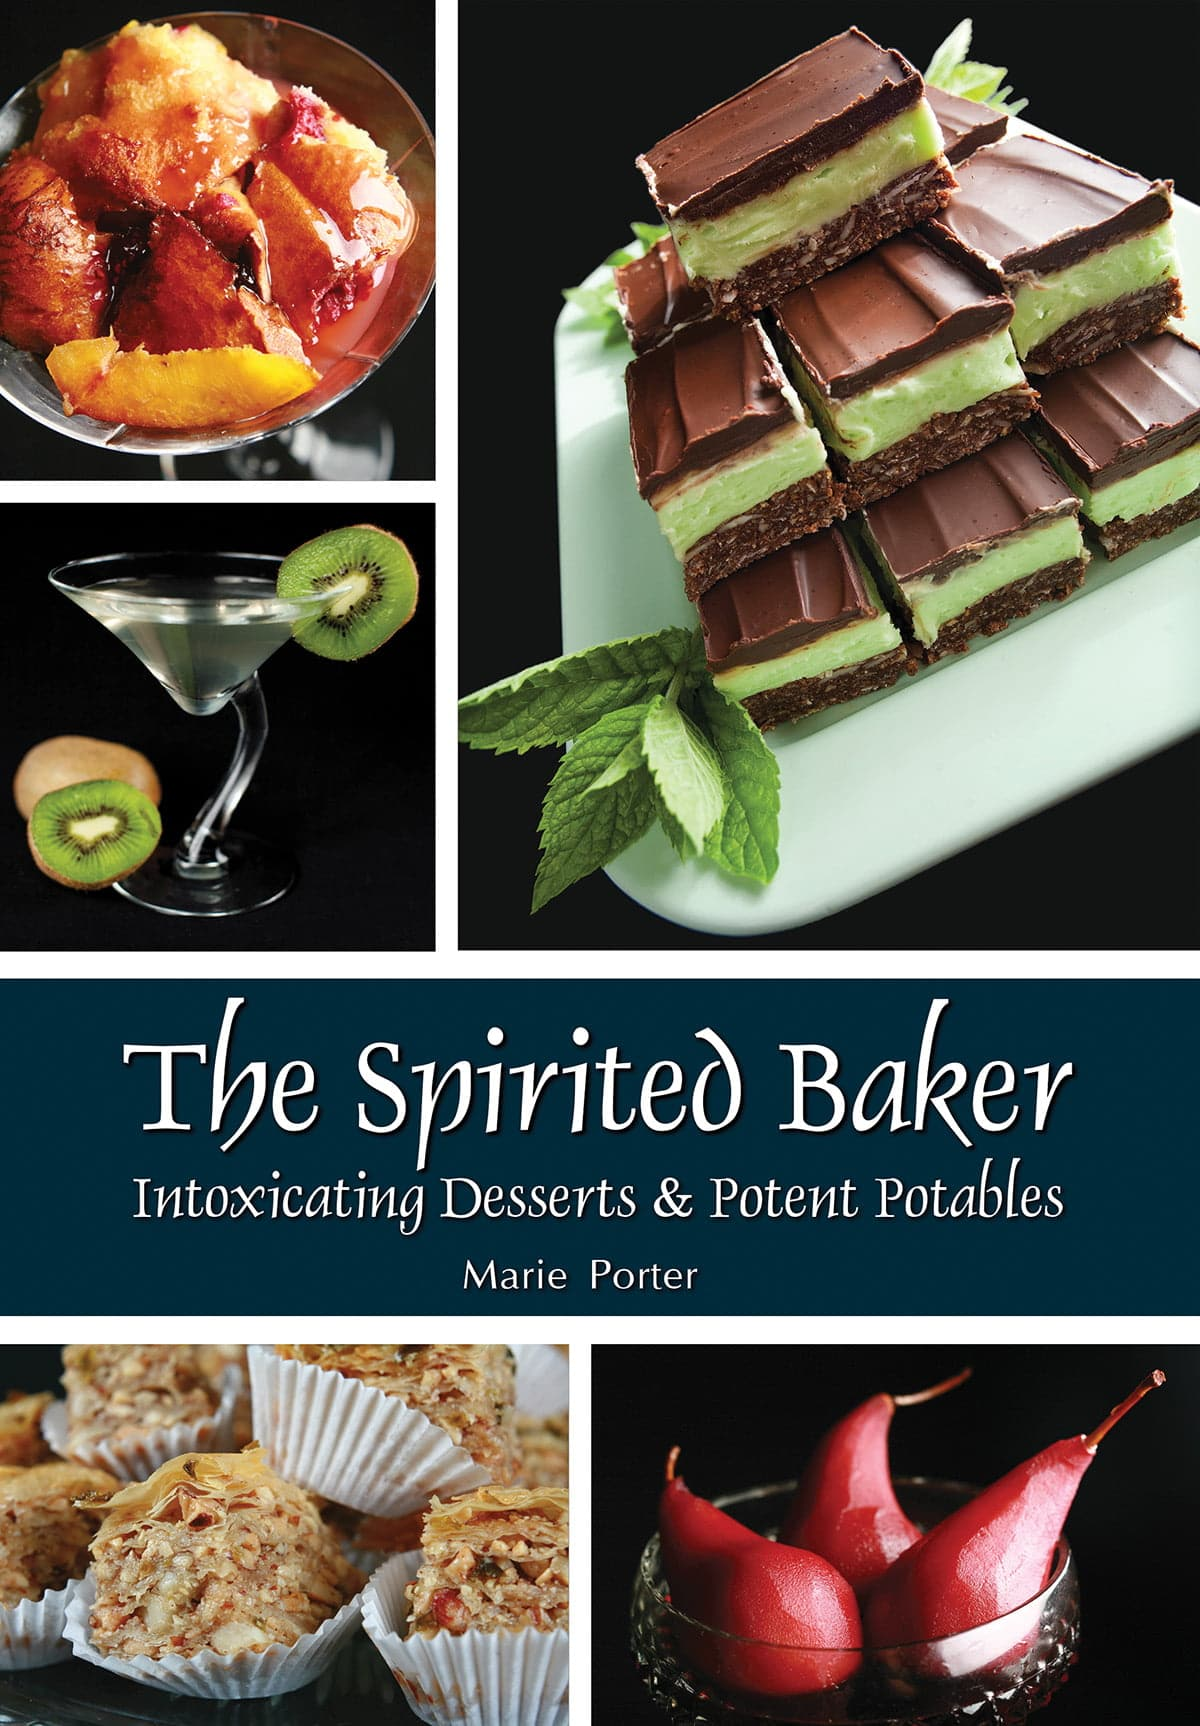 Cover Image for 'The Spirited Baker'cookbook.